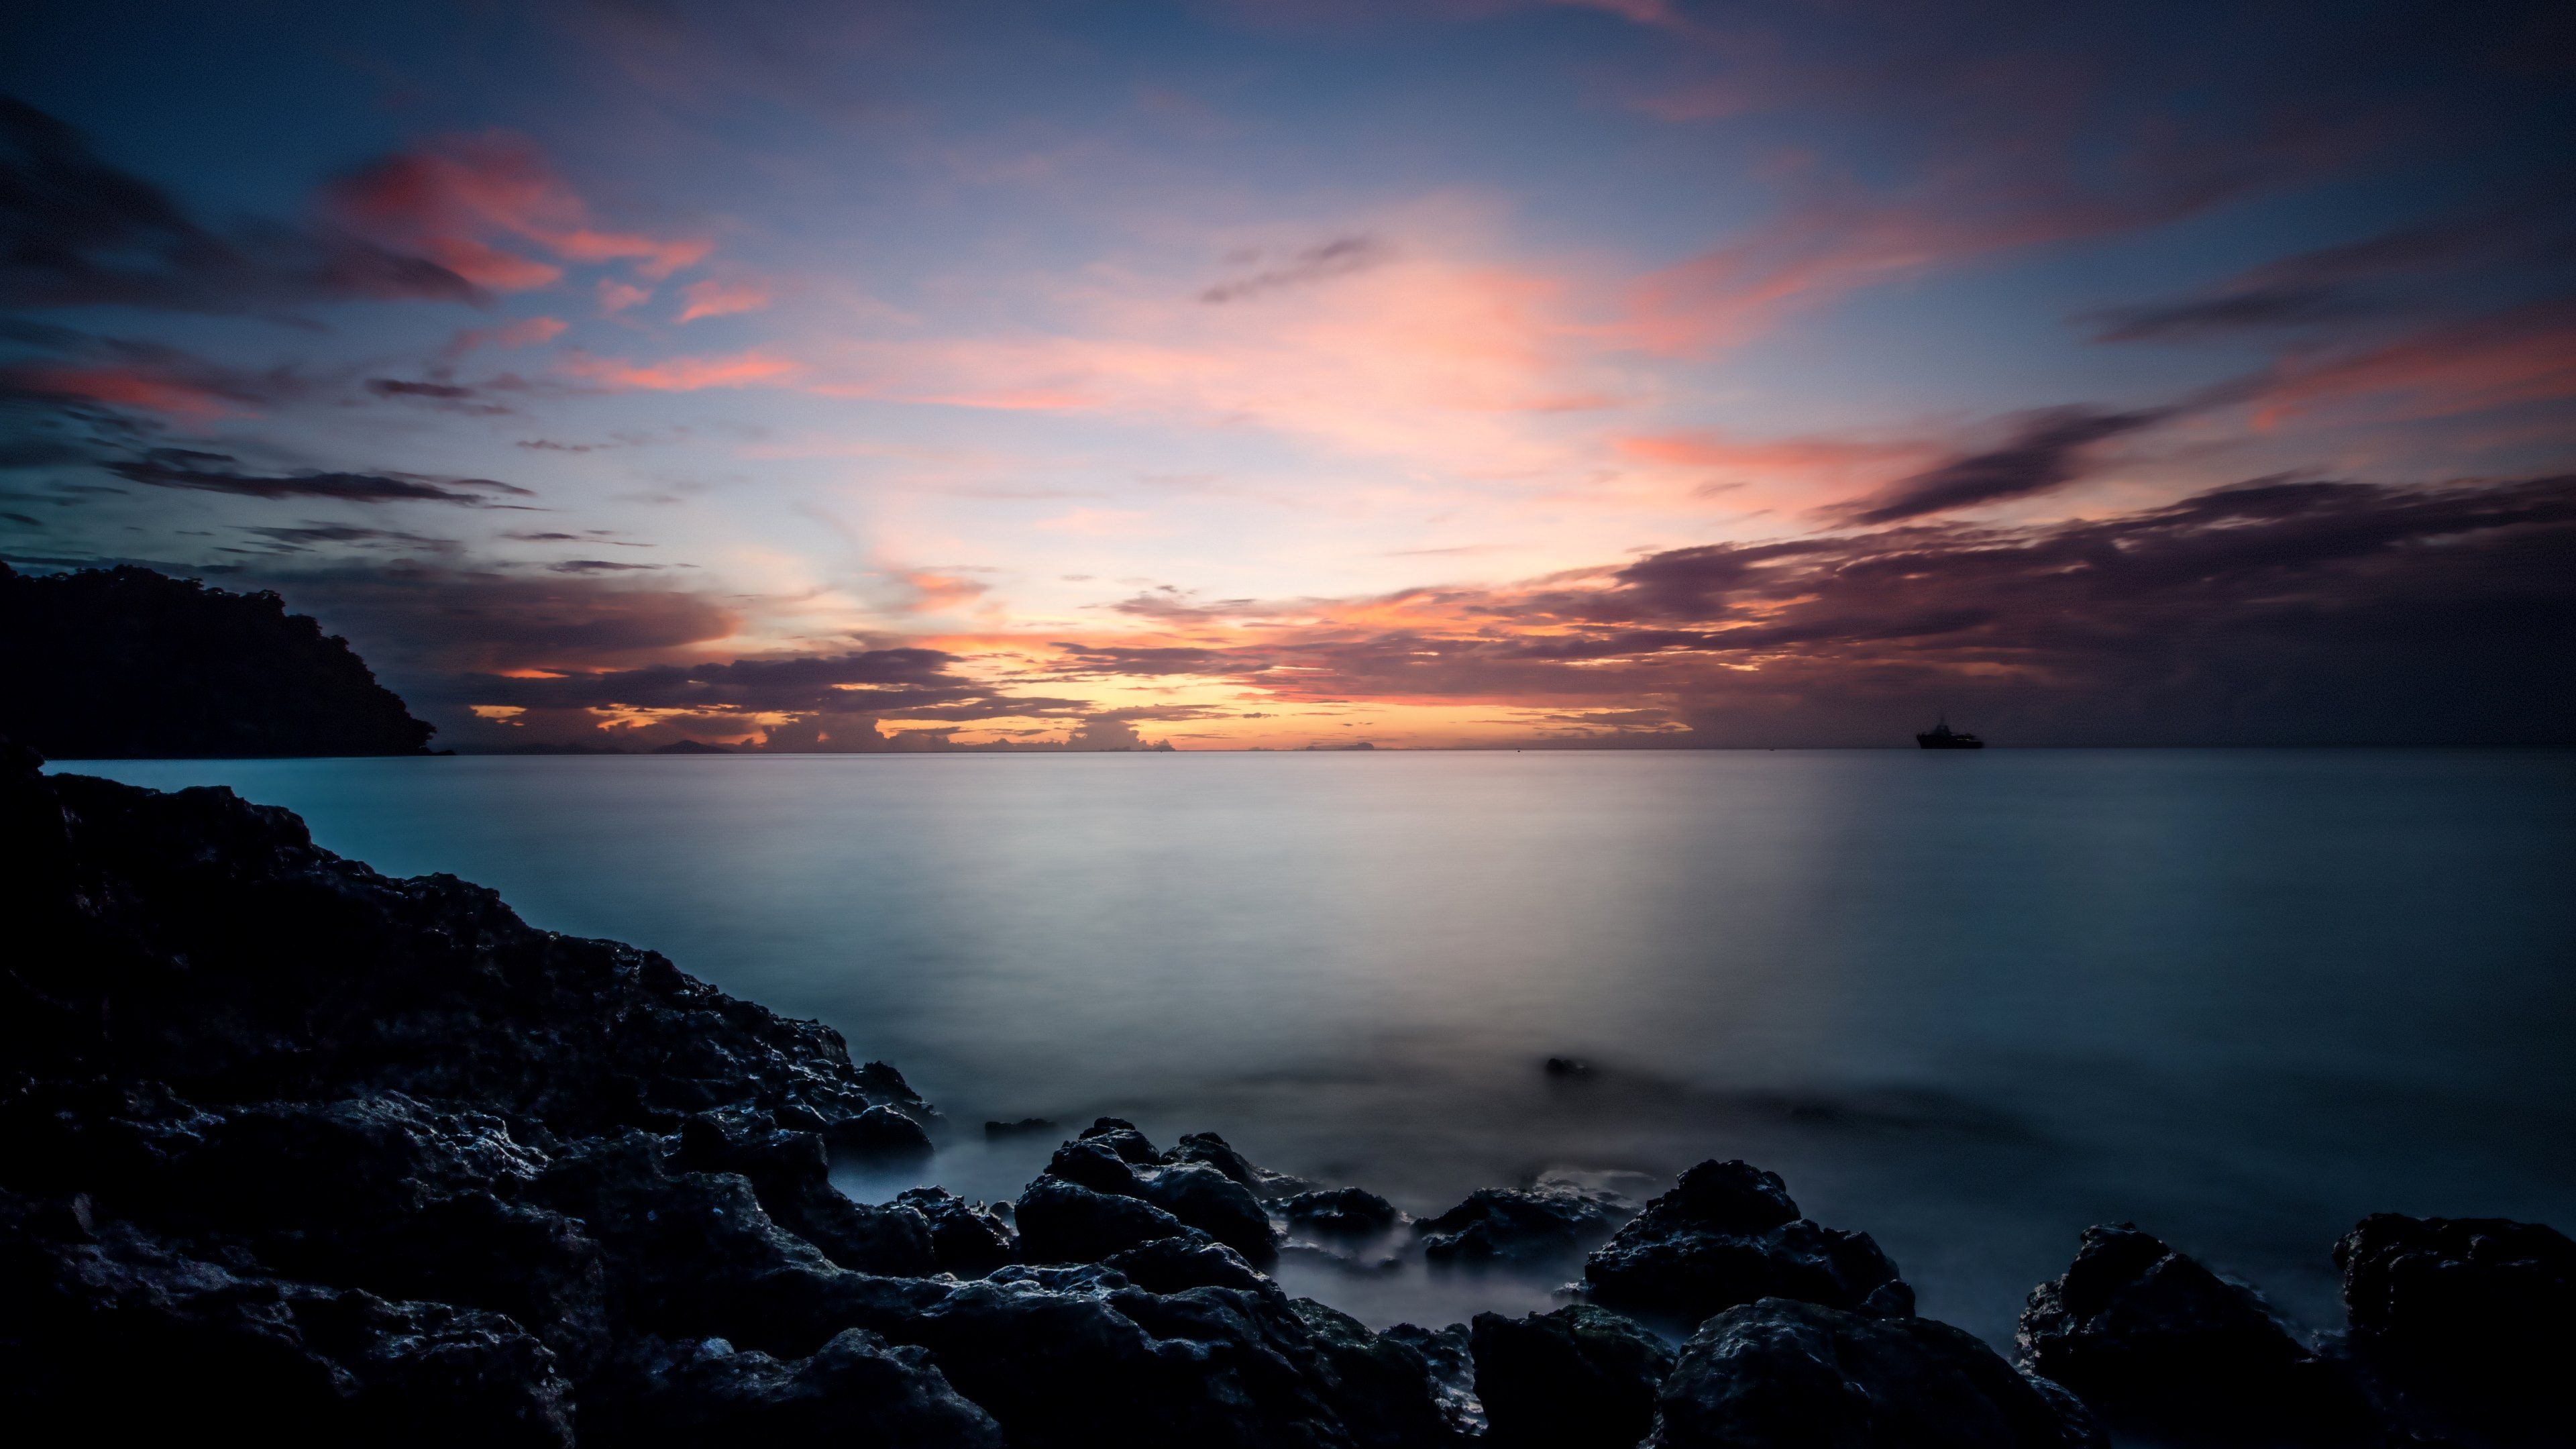 Super Sunrise 4k Wallpaper Sunrise landscape, Thailand